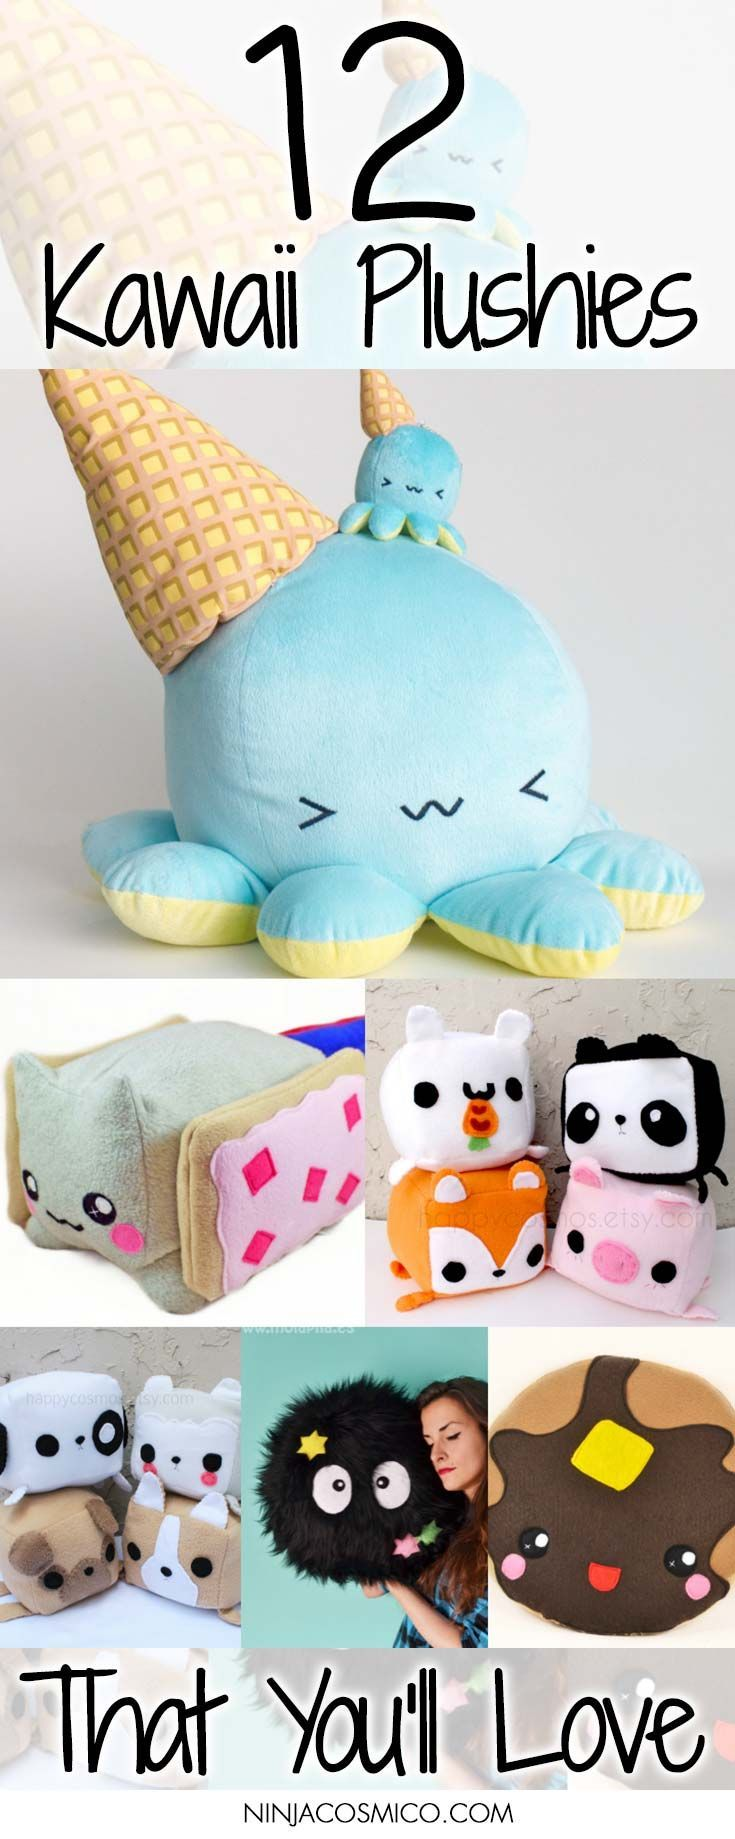 Check these 12 Kawaii Plushies! They are cute, cozy and also fluffy! Perfect for house decoration! Read the article right here: http://ninjacosmico.com/12-kawaii-plushies-that-youll-love/